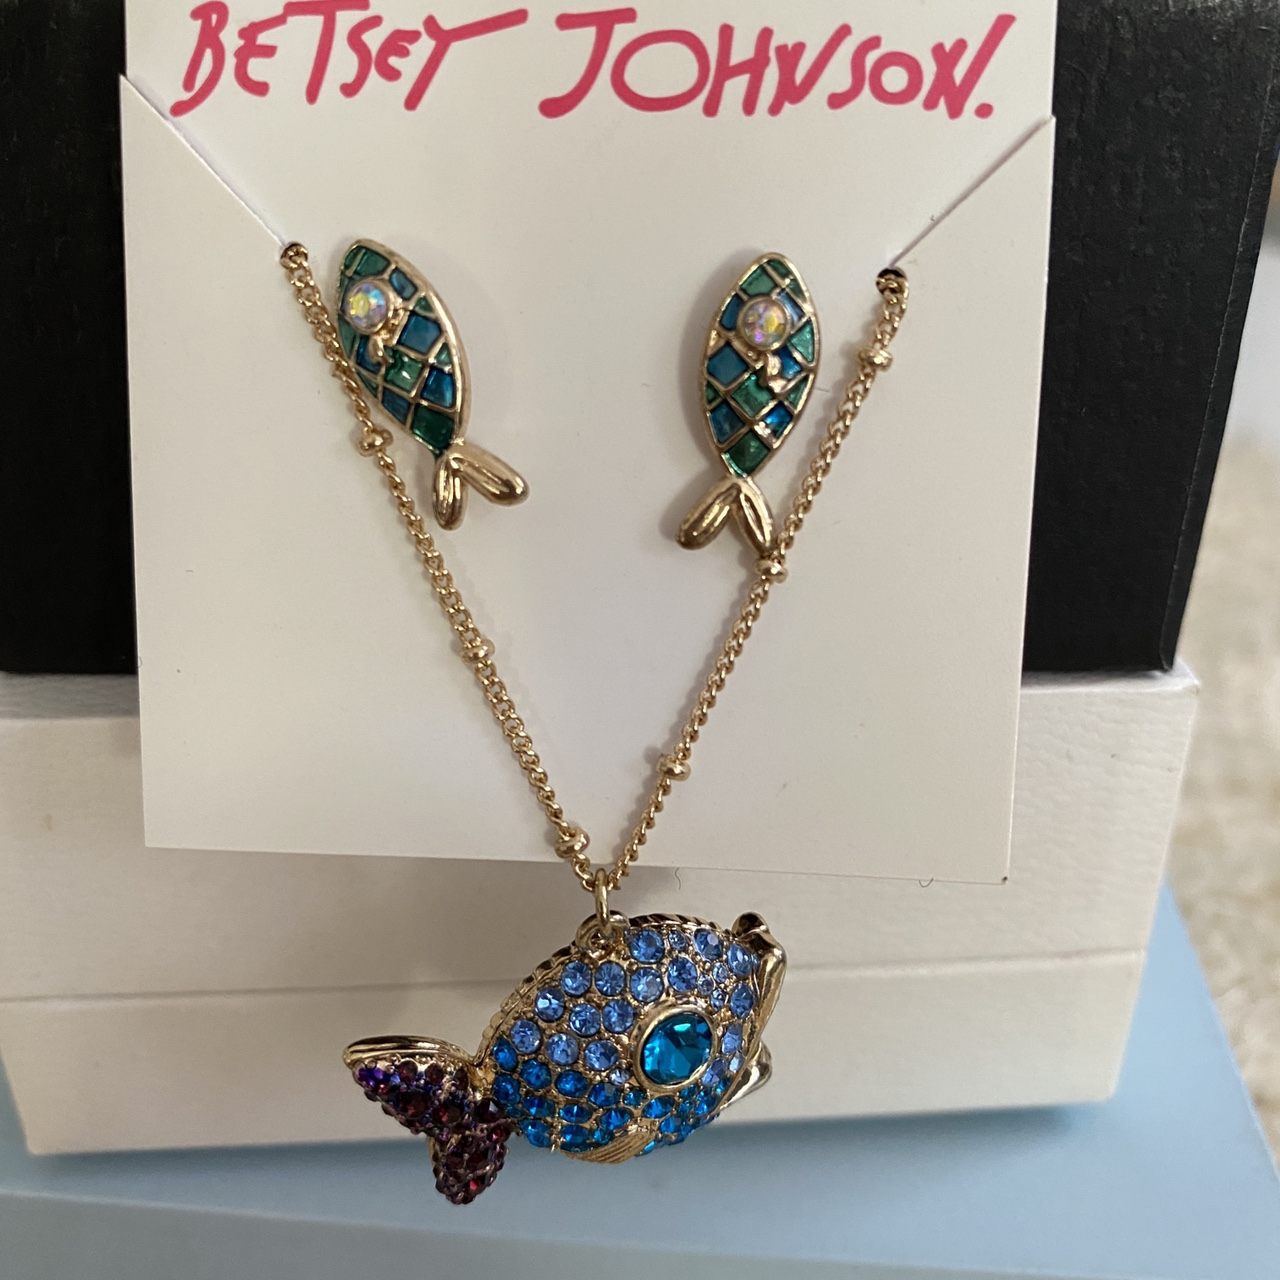 Product Image 1 - BETSEY JOHNSON NECKLACE AND EARRING